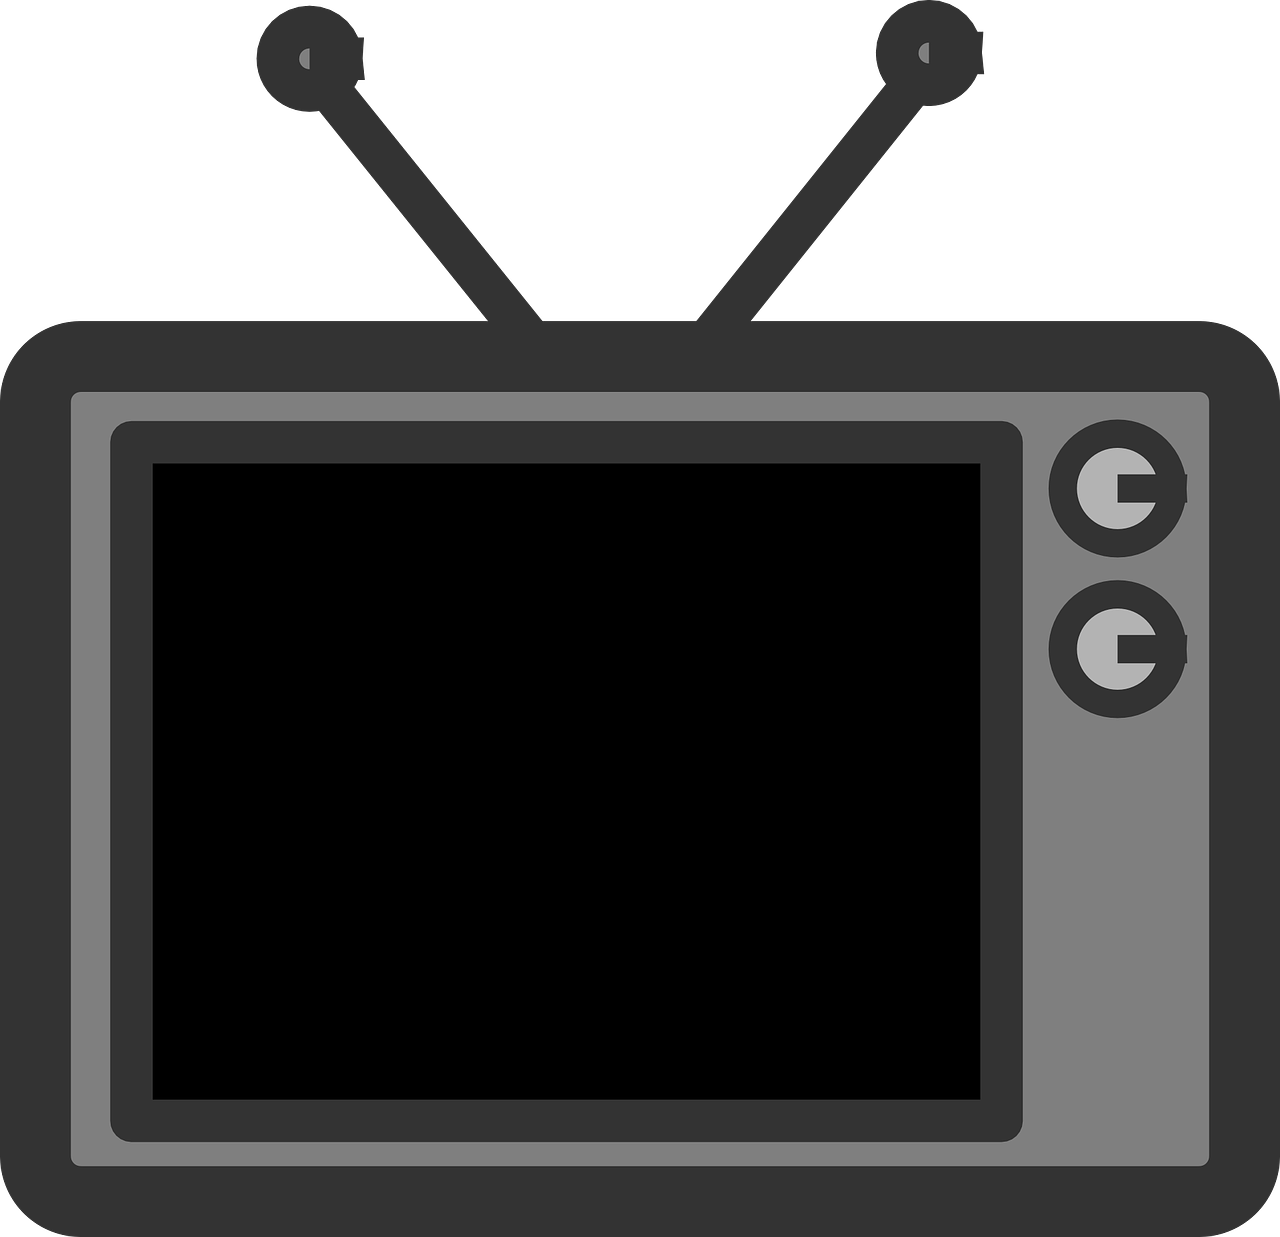 tv ClkerFreeVectorImages